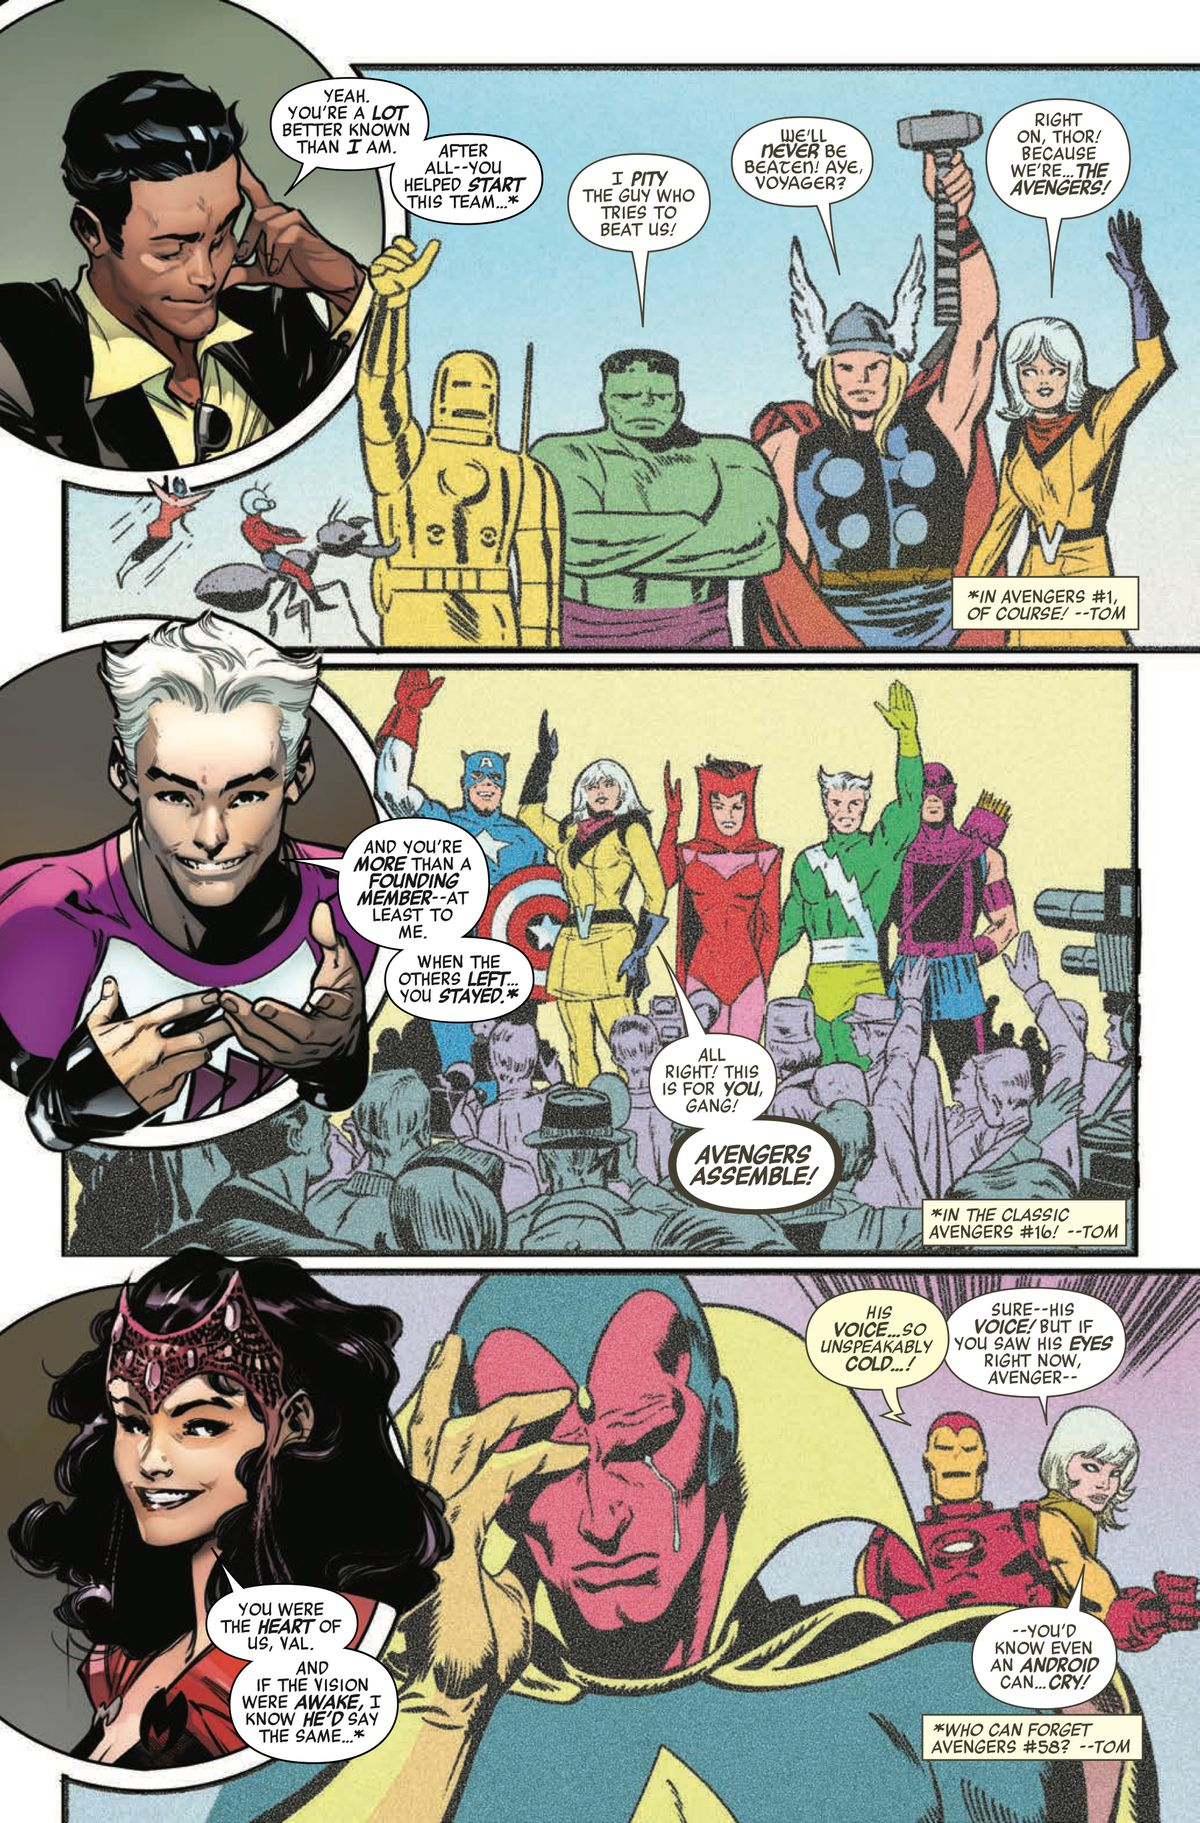 Voyager is retconned into the history of the Avengers in Avengers: No Surrender #1, Marvel Comics 2018.